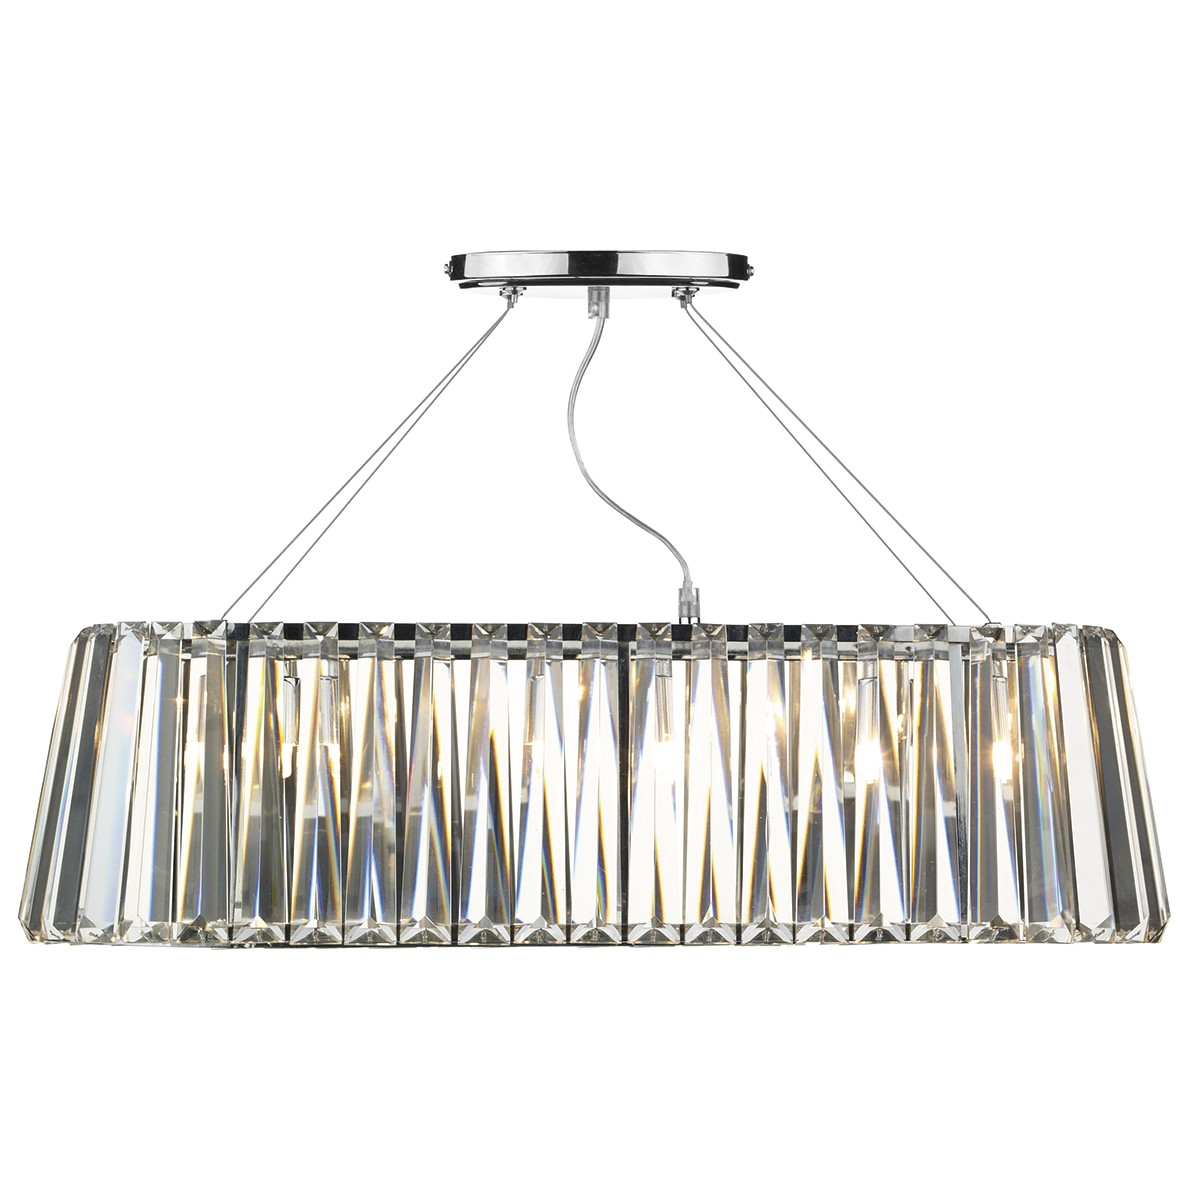 Cecilia 3 light oval linear pendant bar lumination lighting cecilia 3 light oval linear pendant bar mozeypictures Image collections